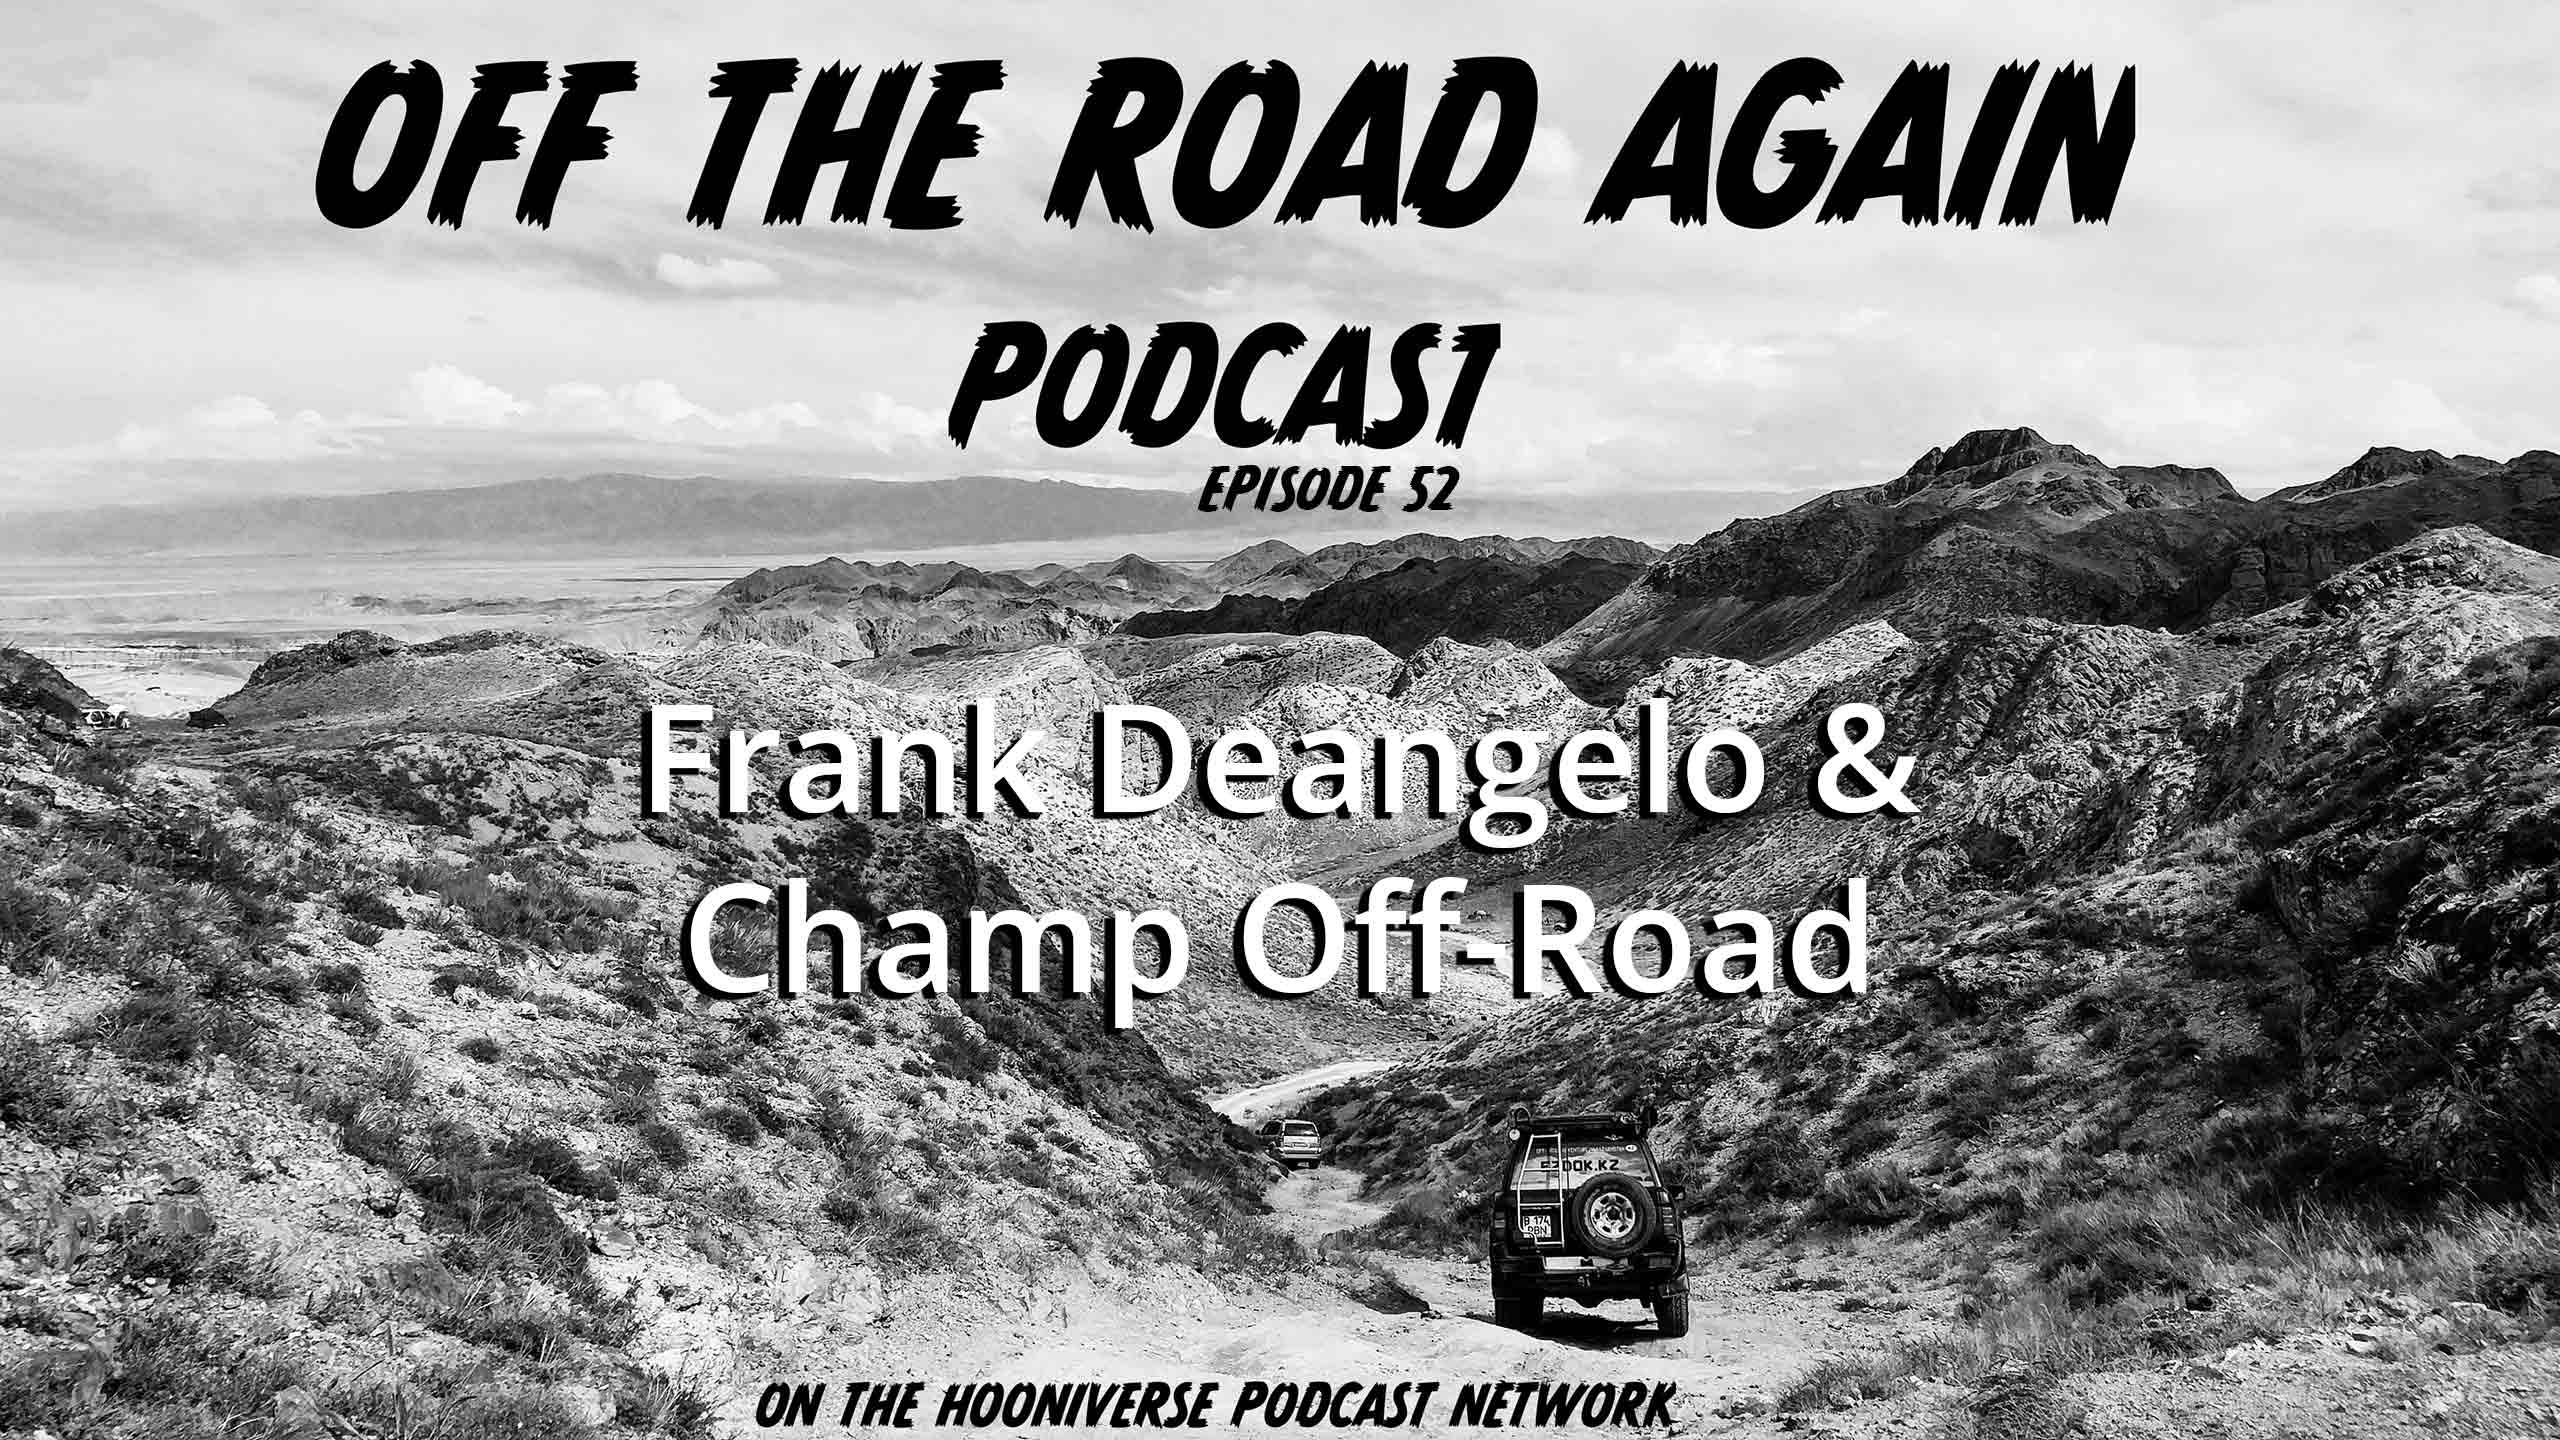 Frank-Deangelo-Champ-Off-Road-Off-The-Road-Again-Podcast-Episode-52